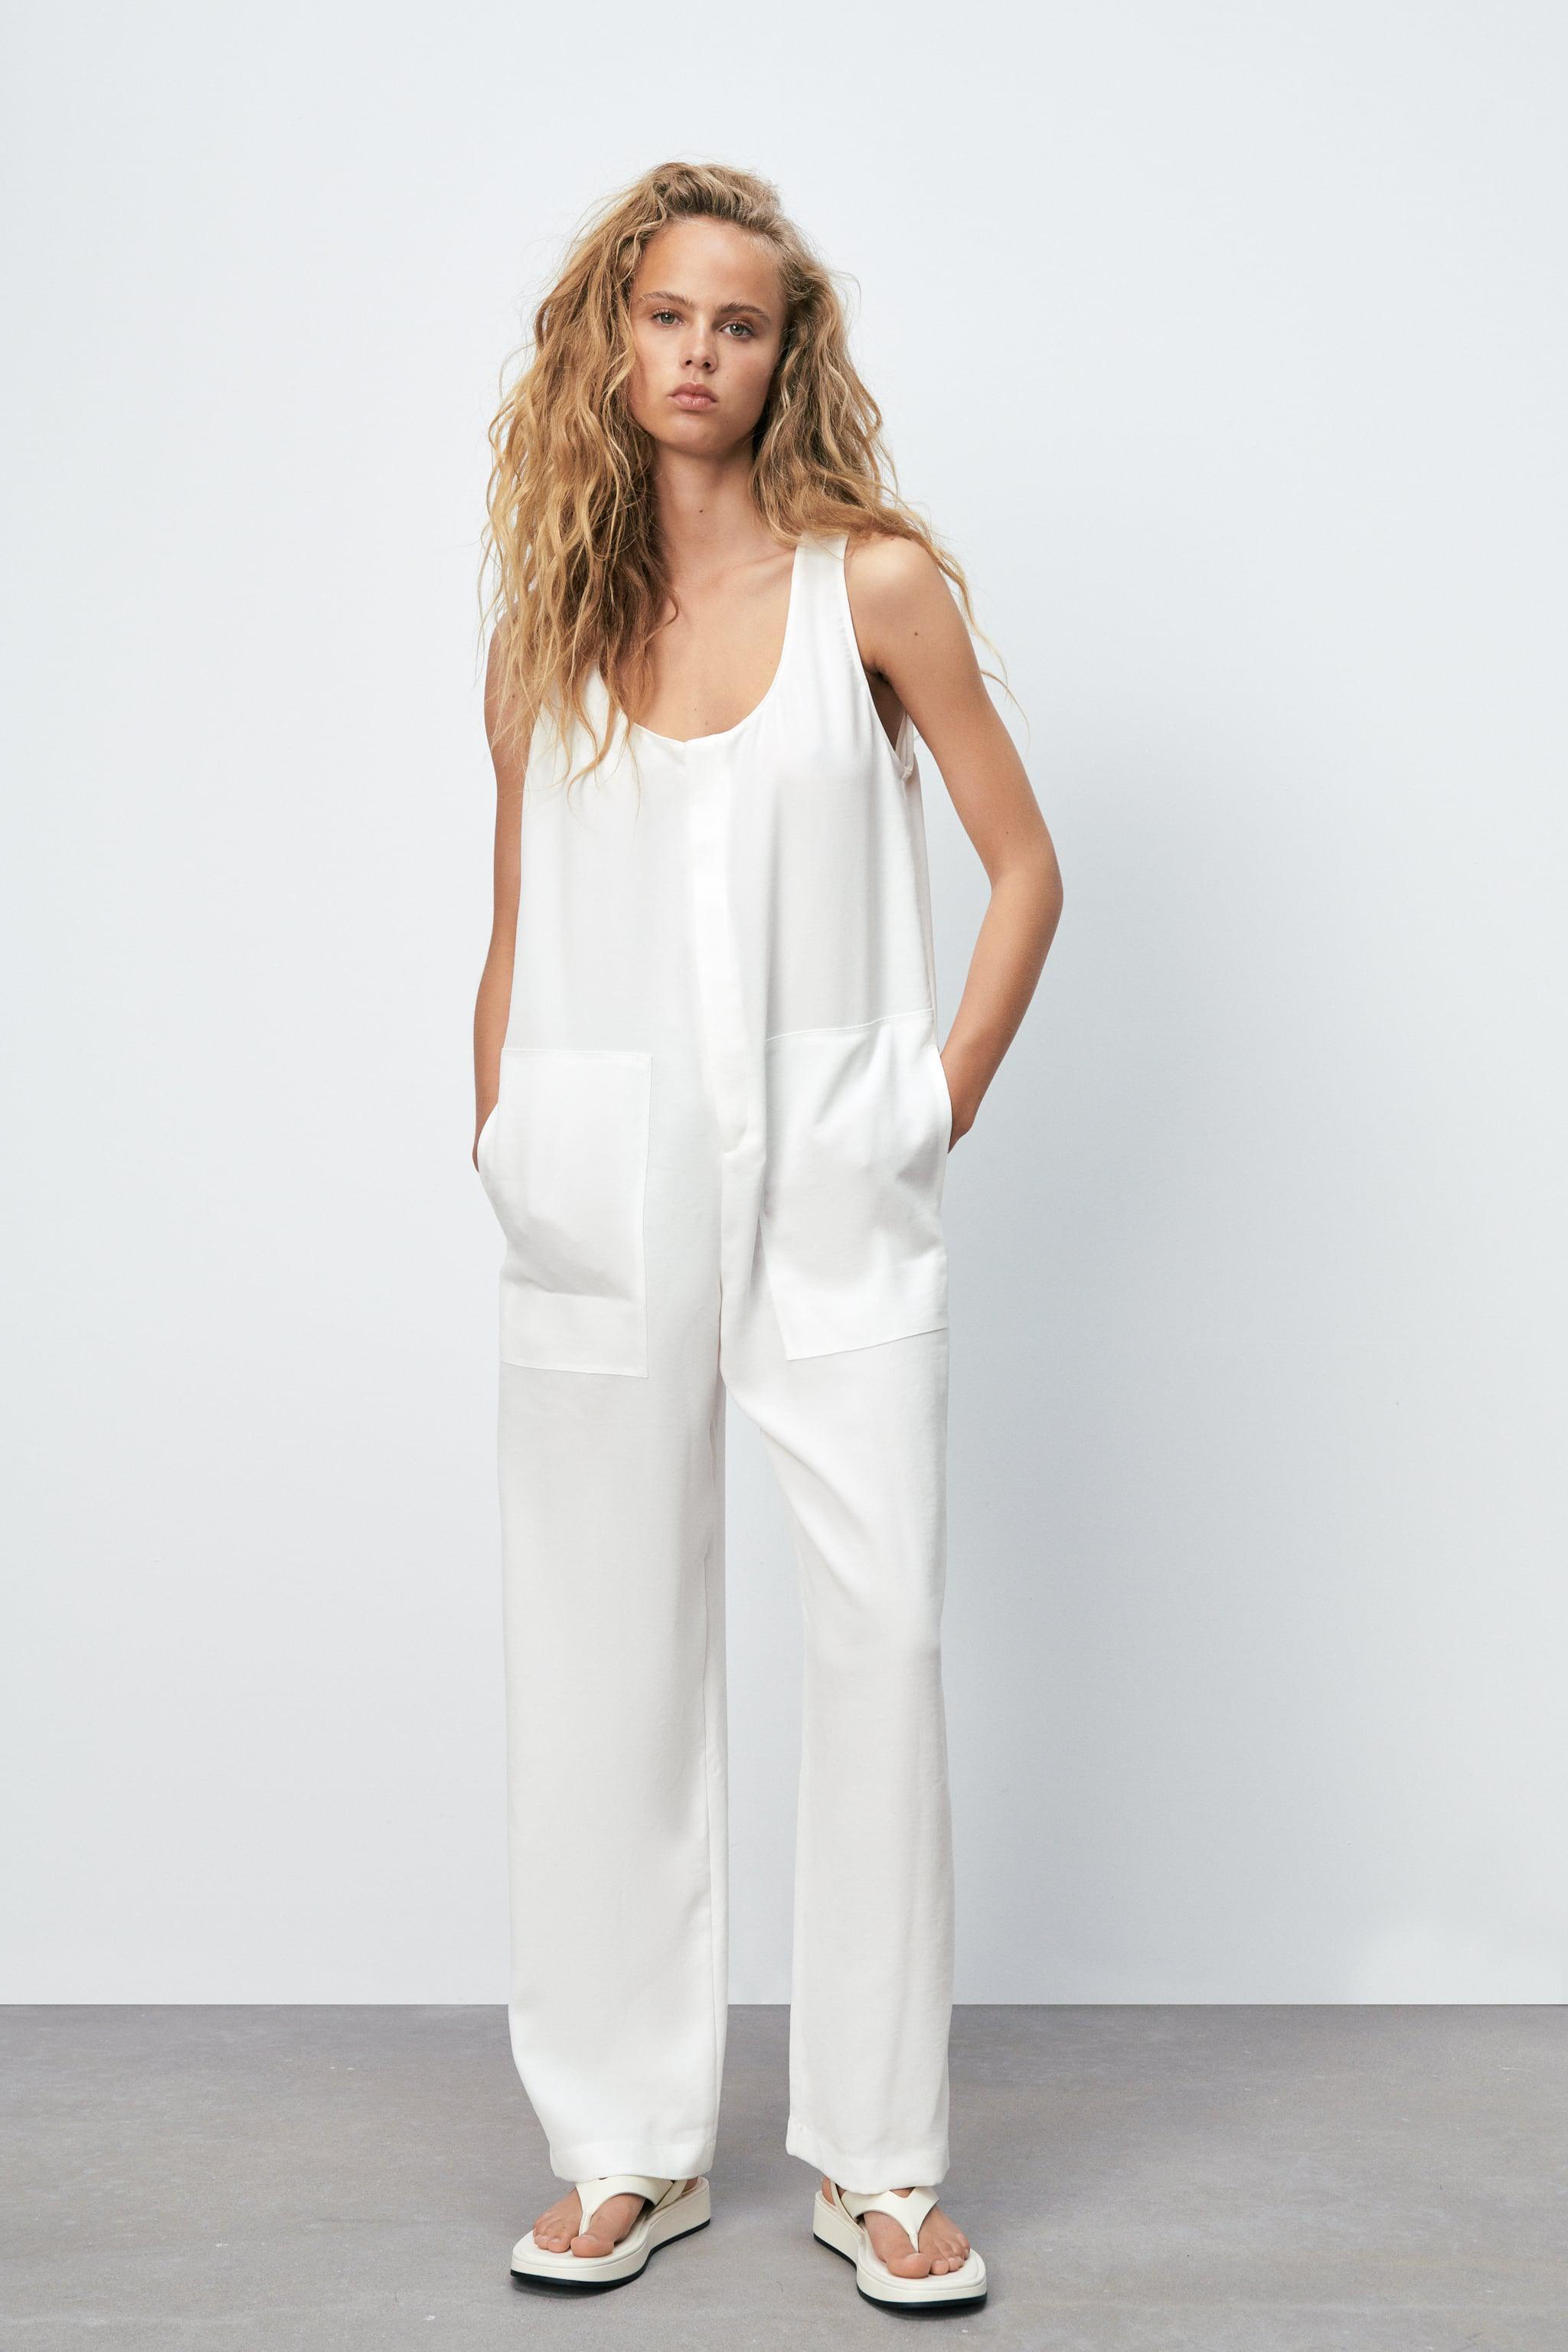 LONG FLOWY OVERALLS